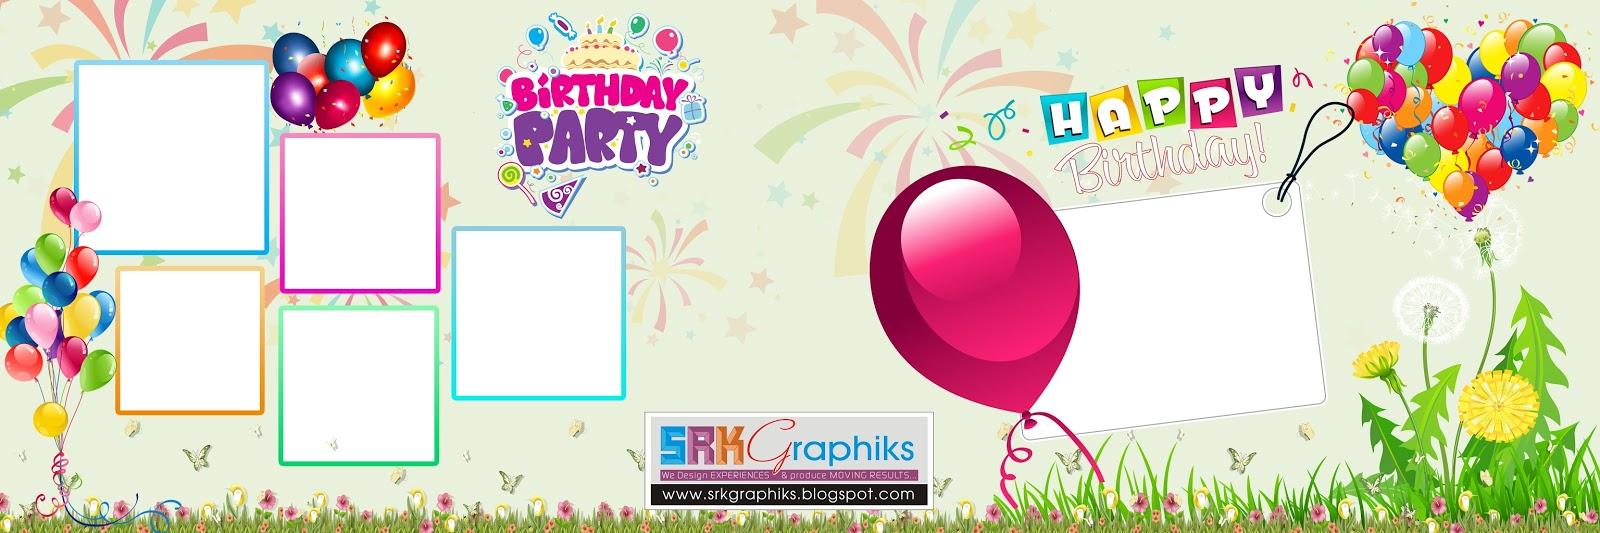 happy birthday psd background ; happy-birthday-psd-background-8